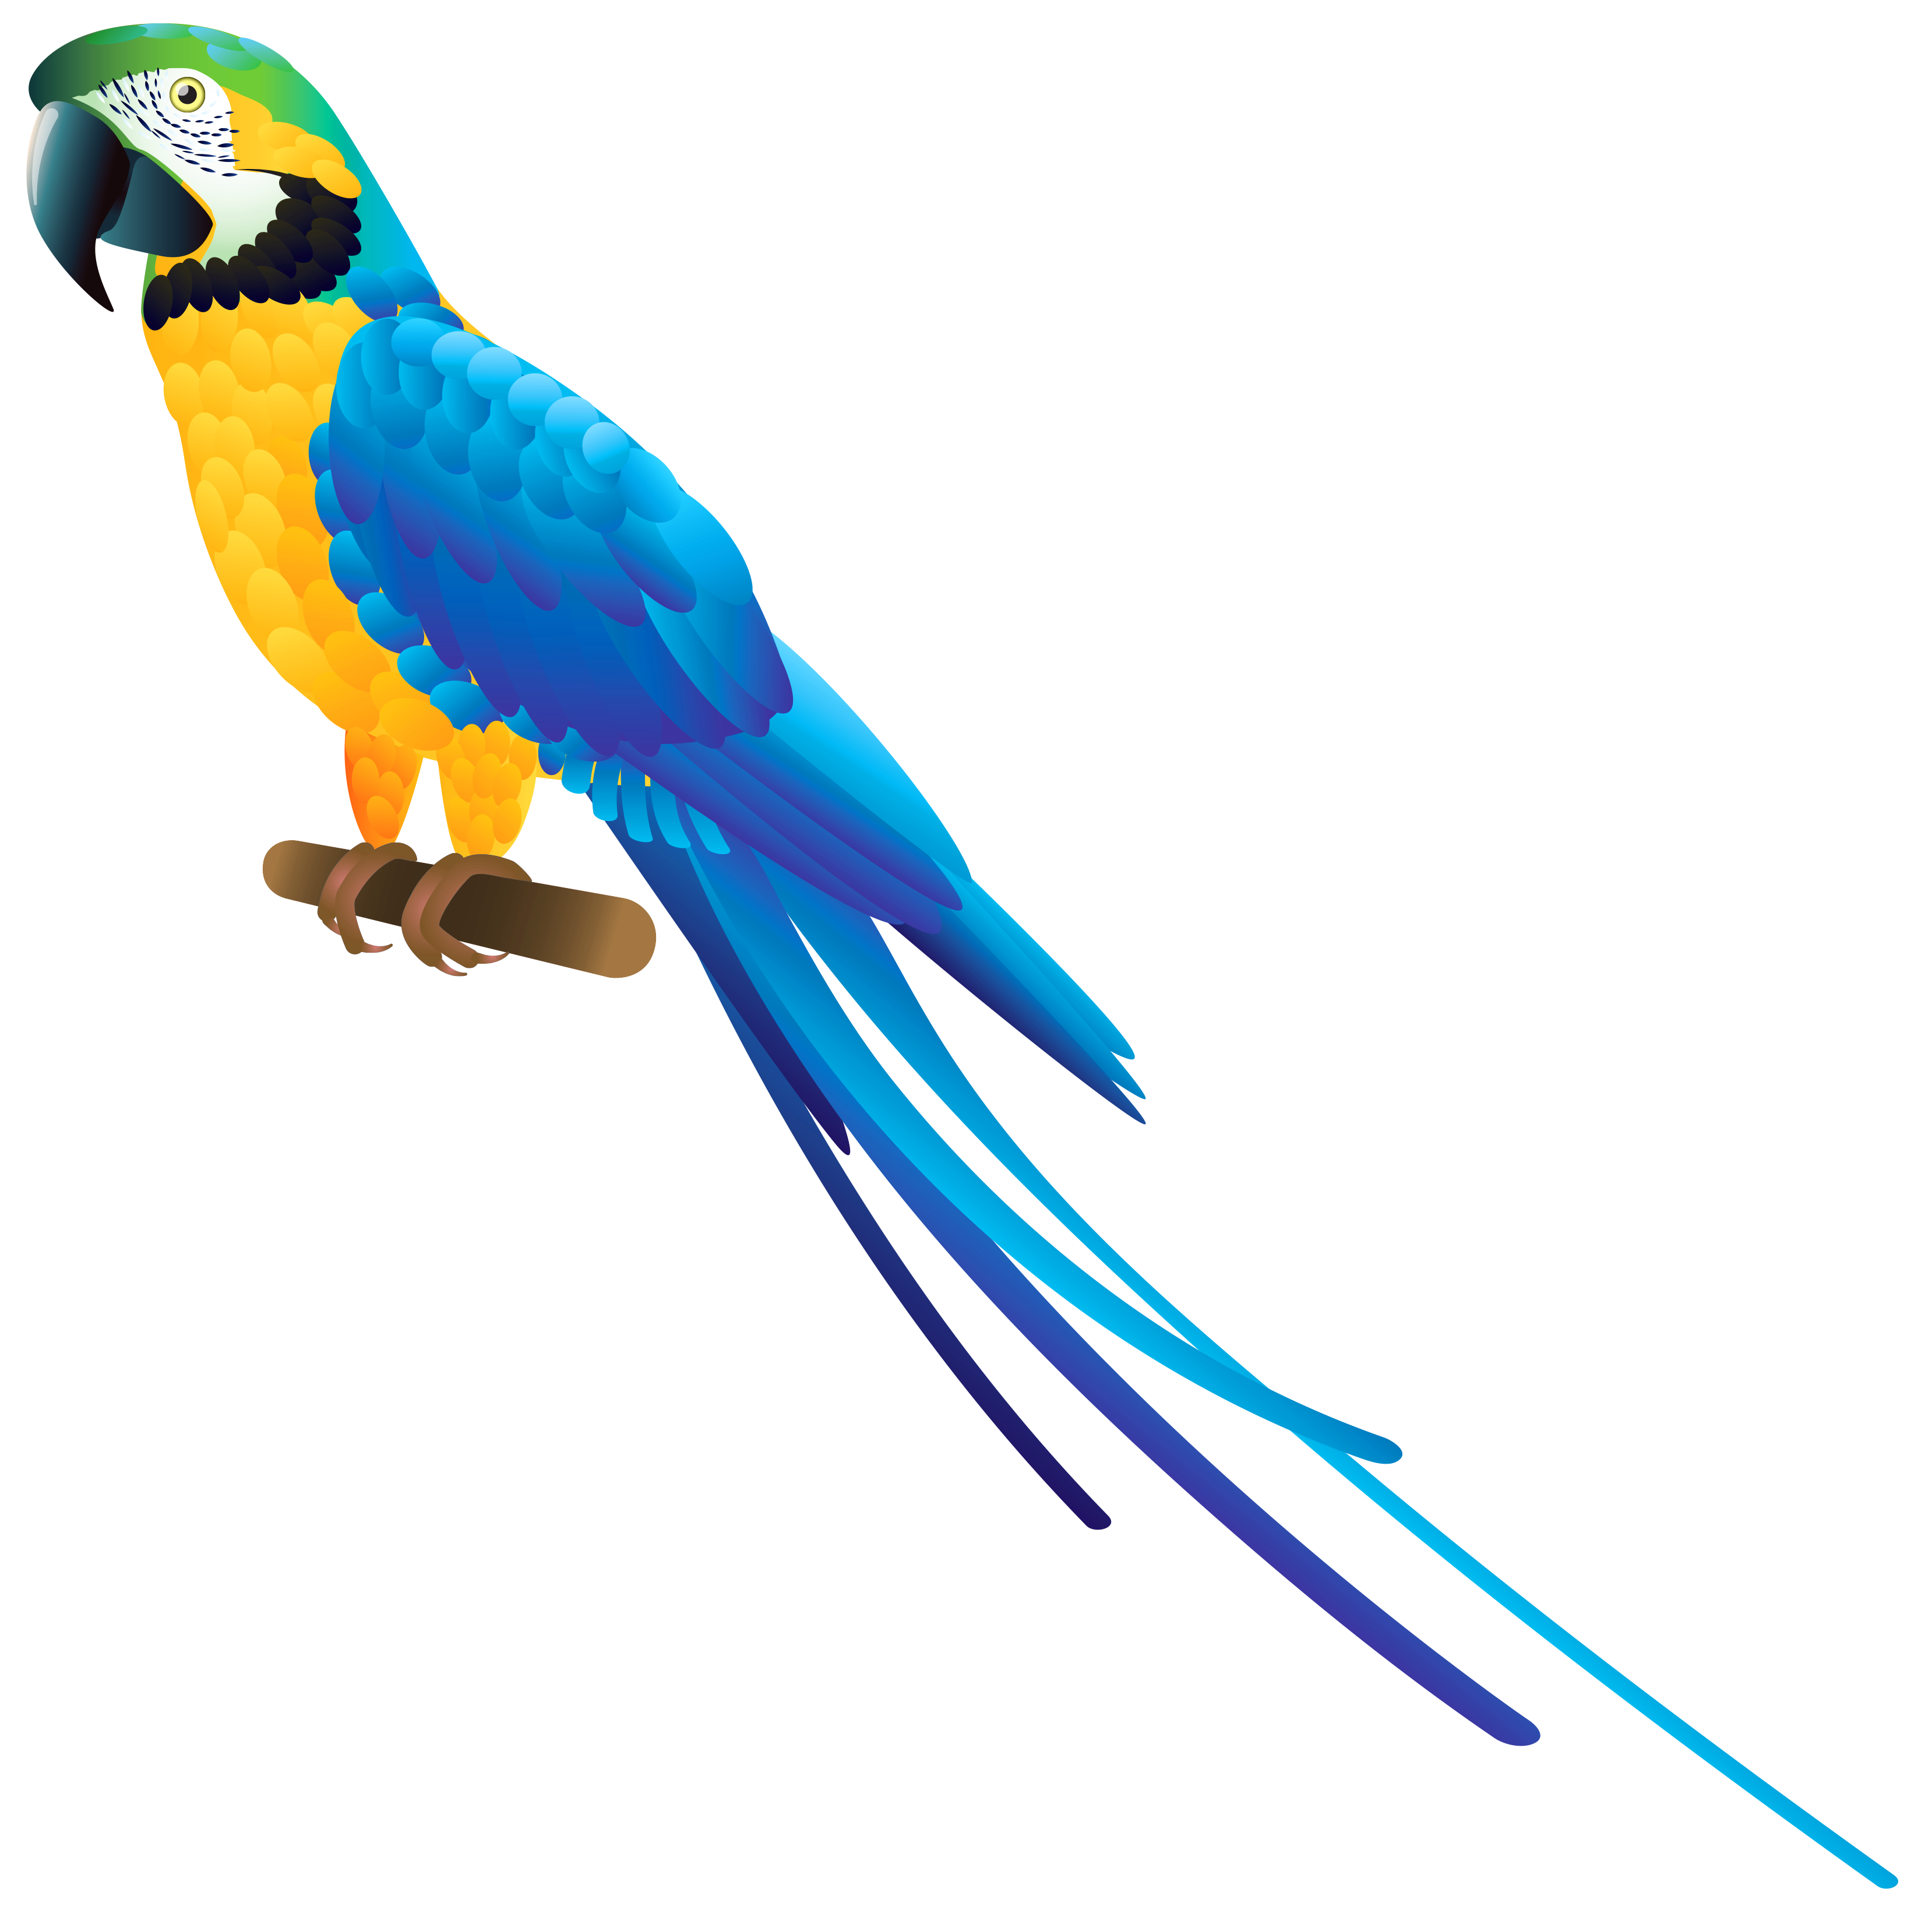 Png Clipart Collection Parrot image #22824